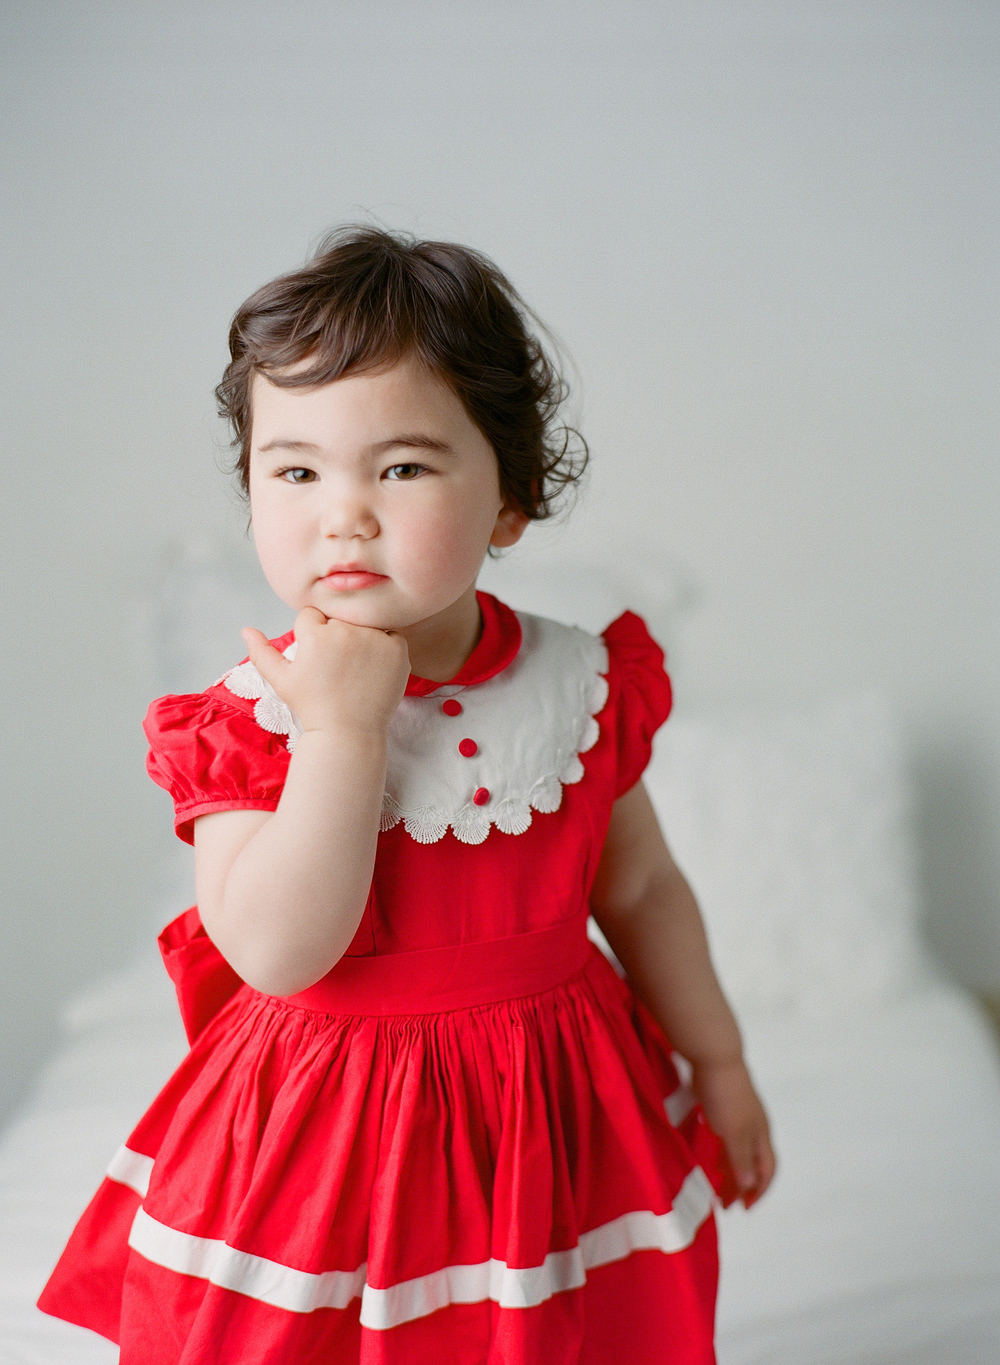 Family photography Seattle, by Sandra Coan. Studio photograph.  Little girl wearing a red dress